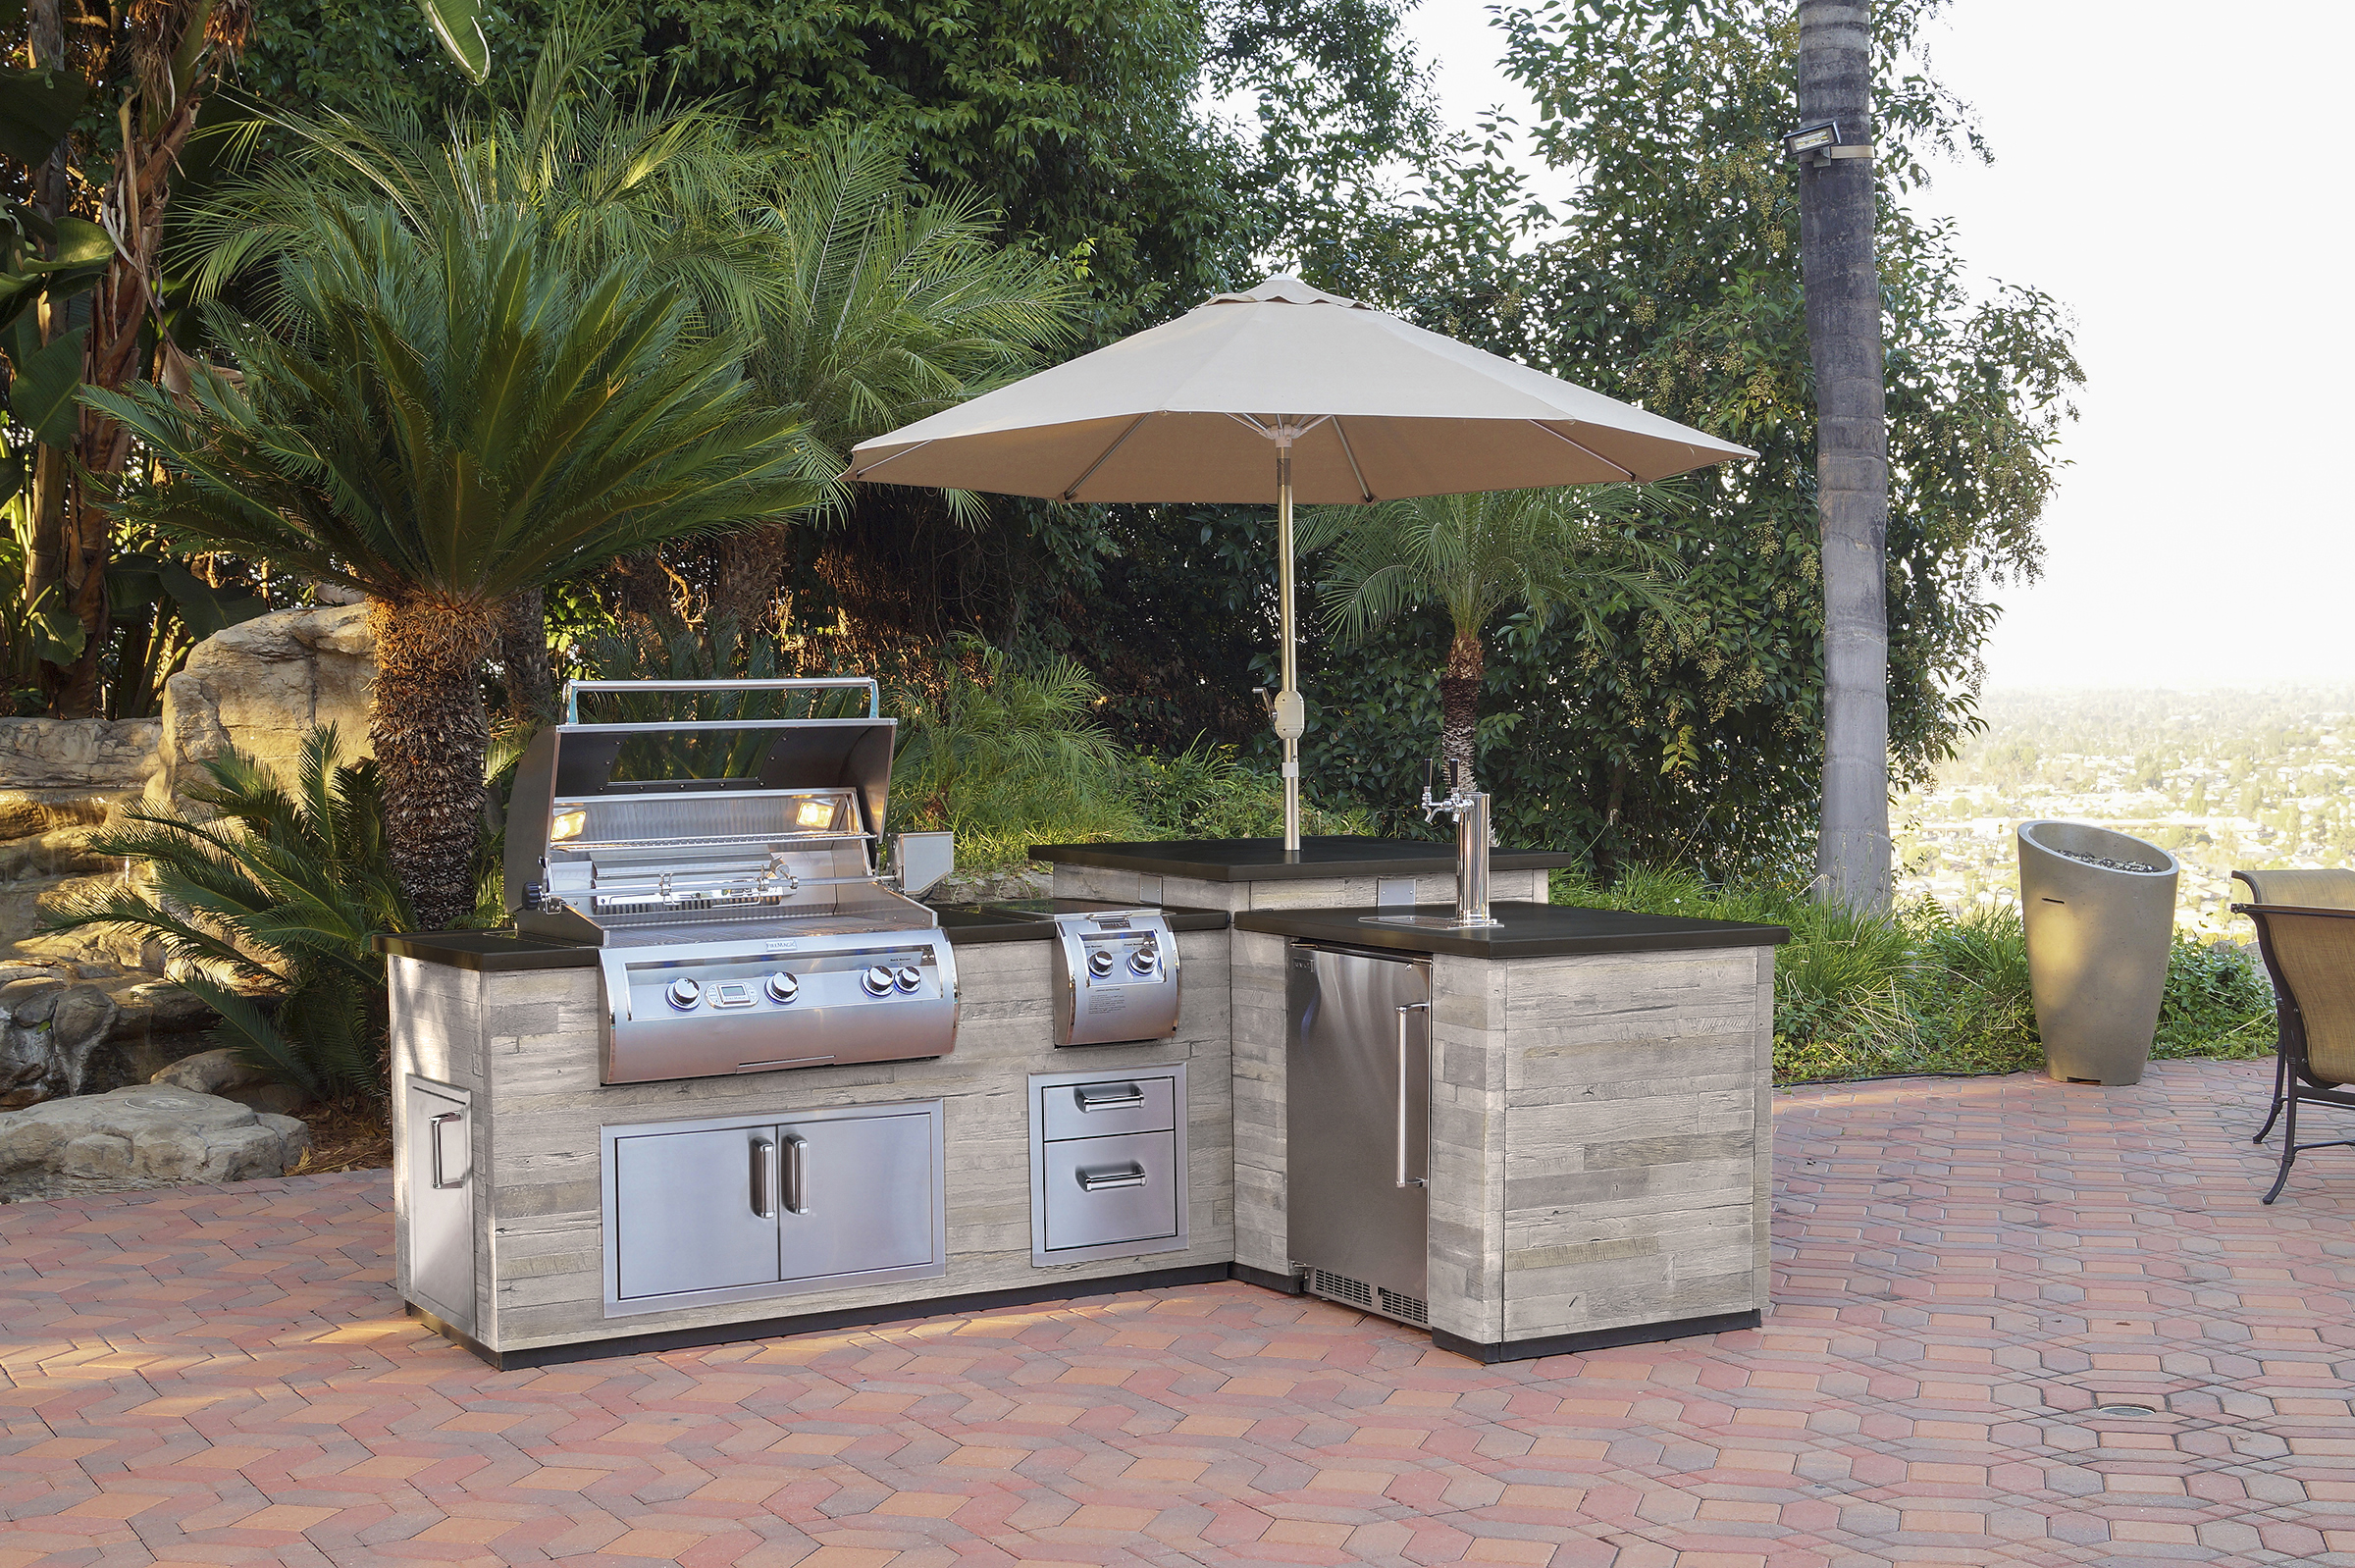 FM_DL660-SPK-116BA_SP Island Package with Kegerator, Lifestyle